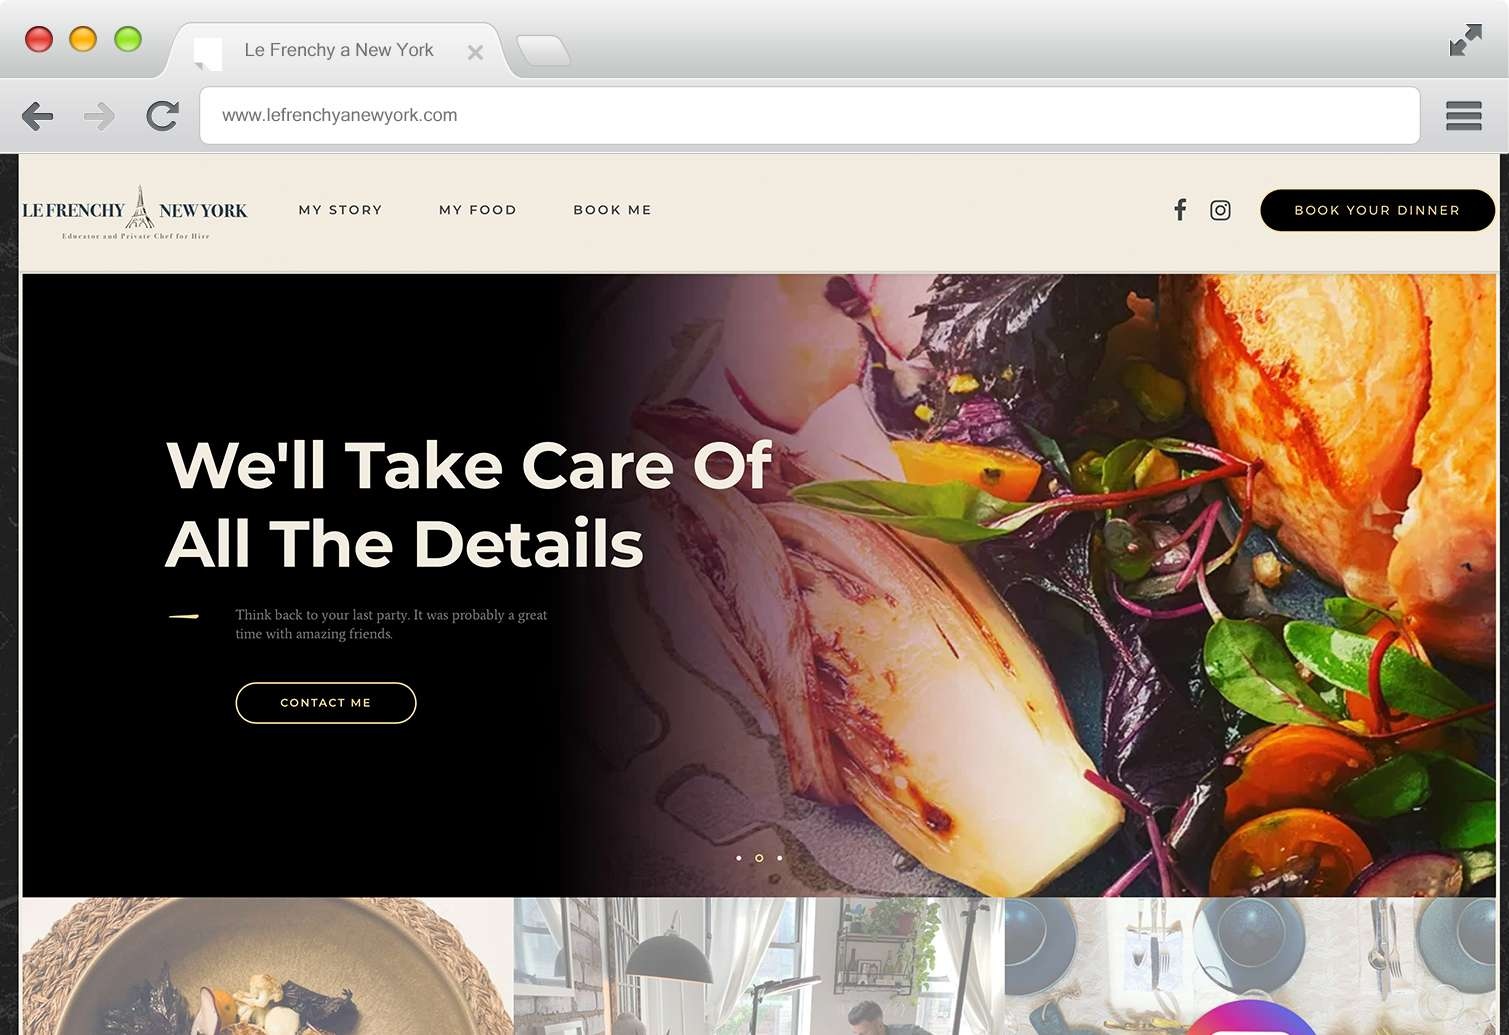 Website and Branding - Le Frenchy A New York